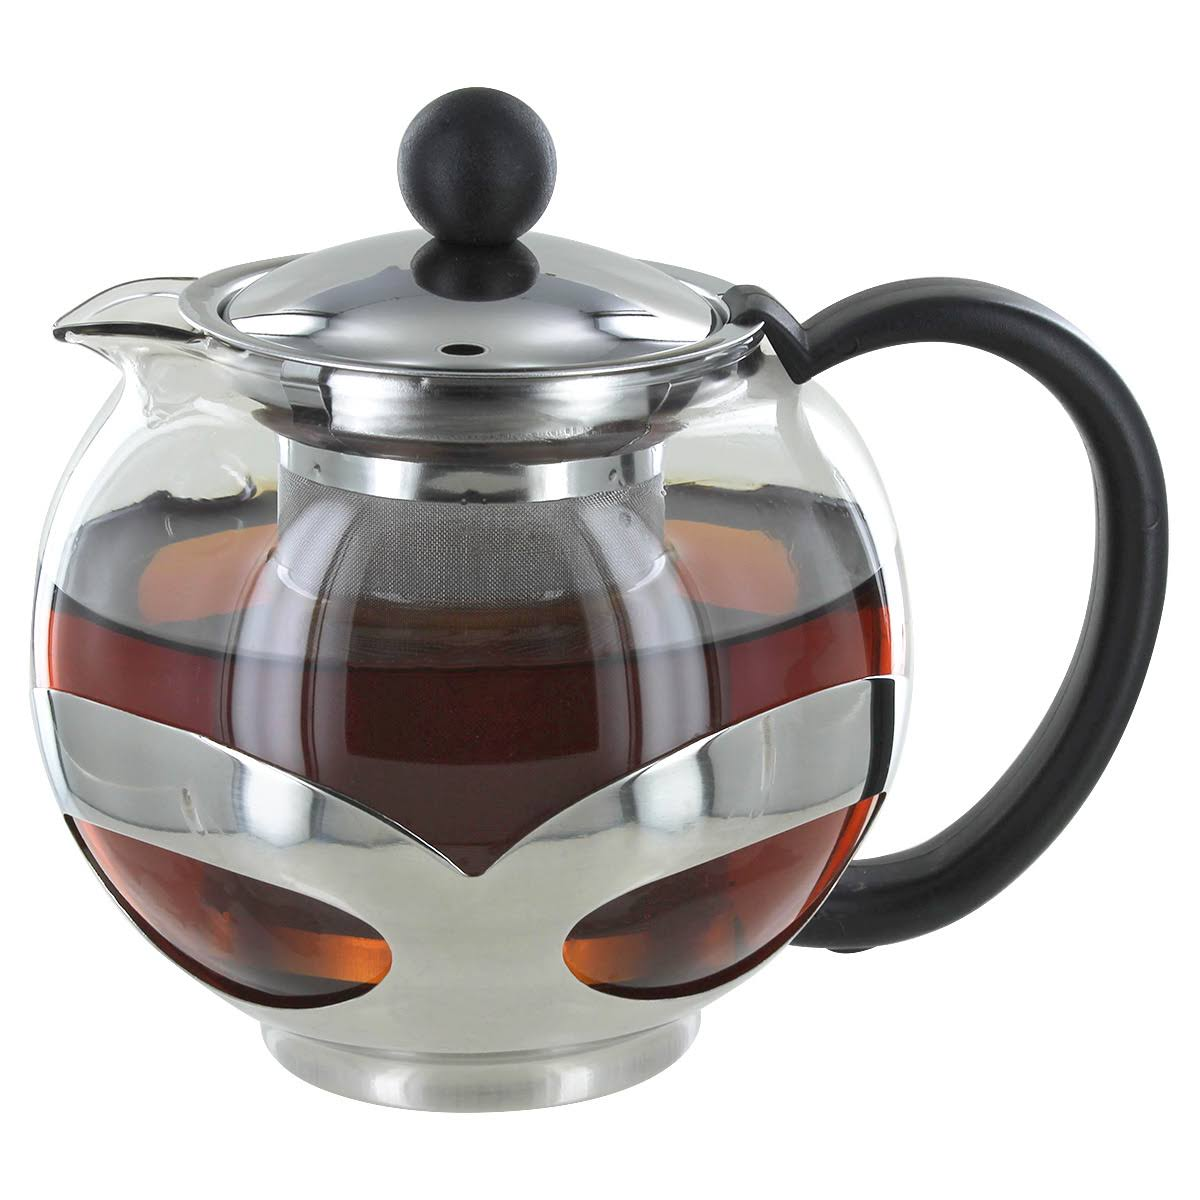 Metallic Glass Tea Pot for 2 or More w/ Removable Steel Infuser - Pride Of India